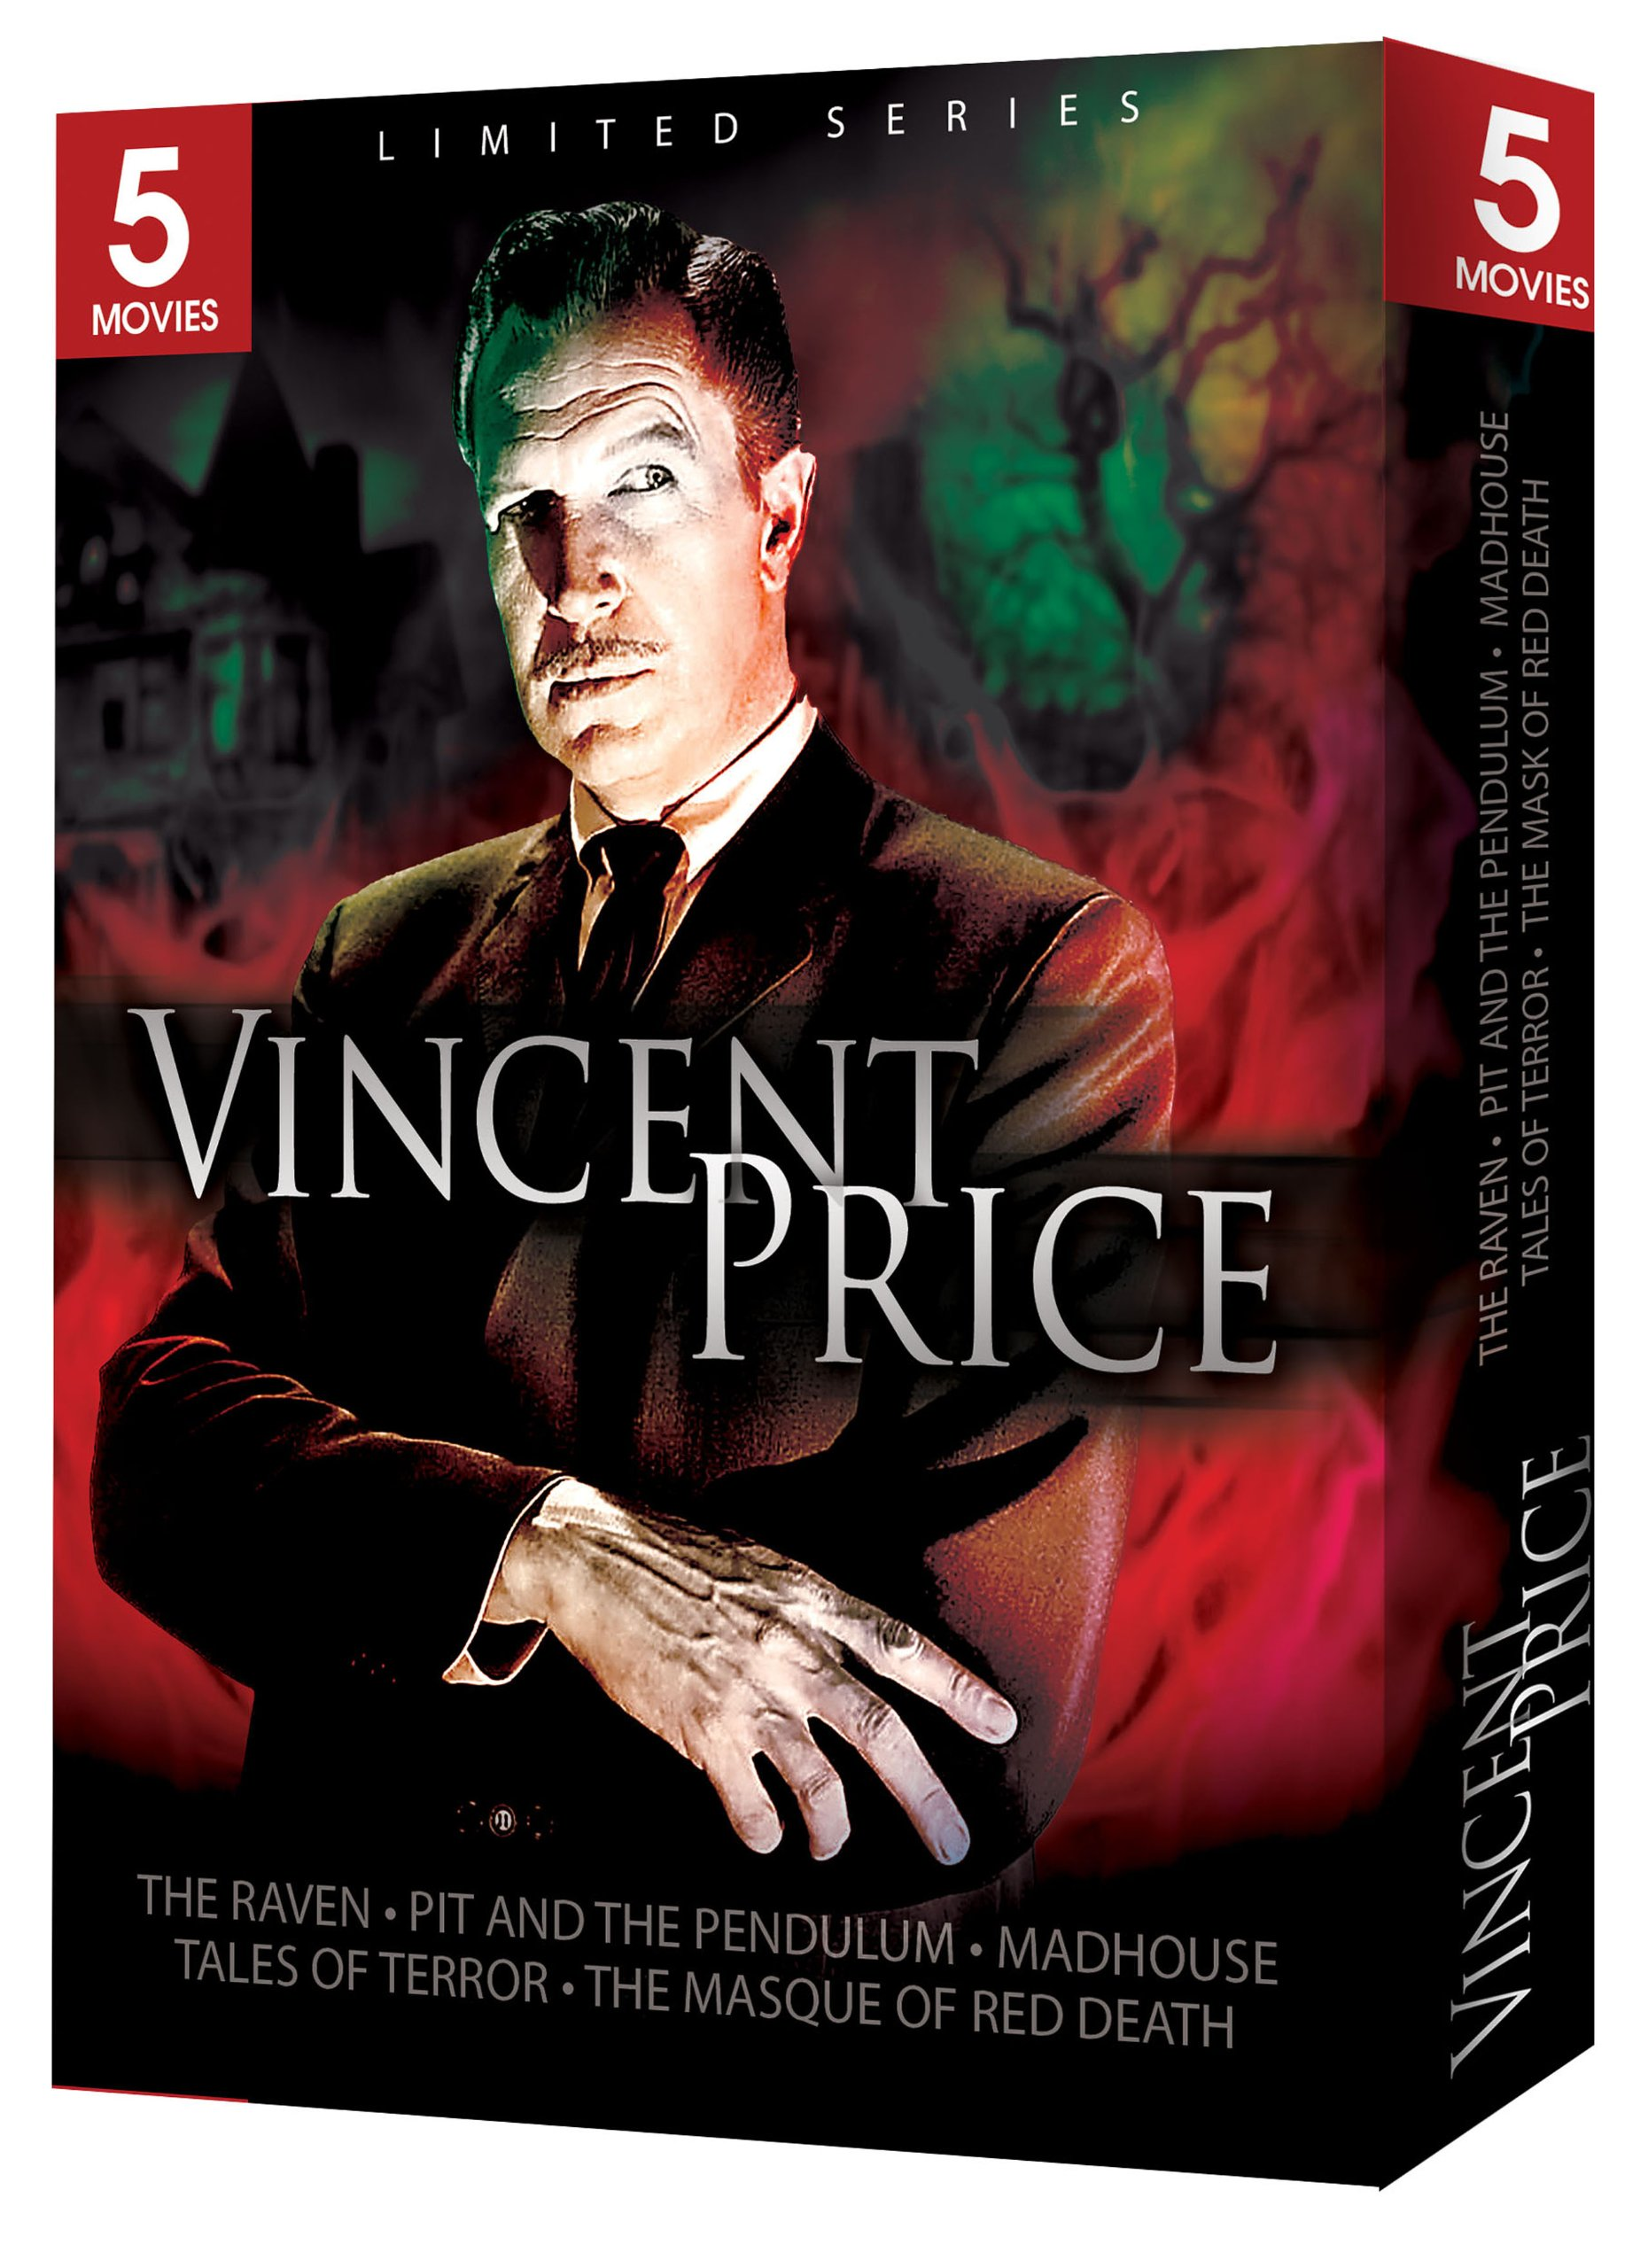 Vincent Price 5 Movie Gift Box: Limited Series (The Raven / The Pit and the Pendulum / Madhouse / Tales Of Terror / The Masque of the Red Death)